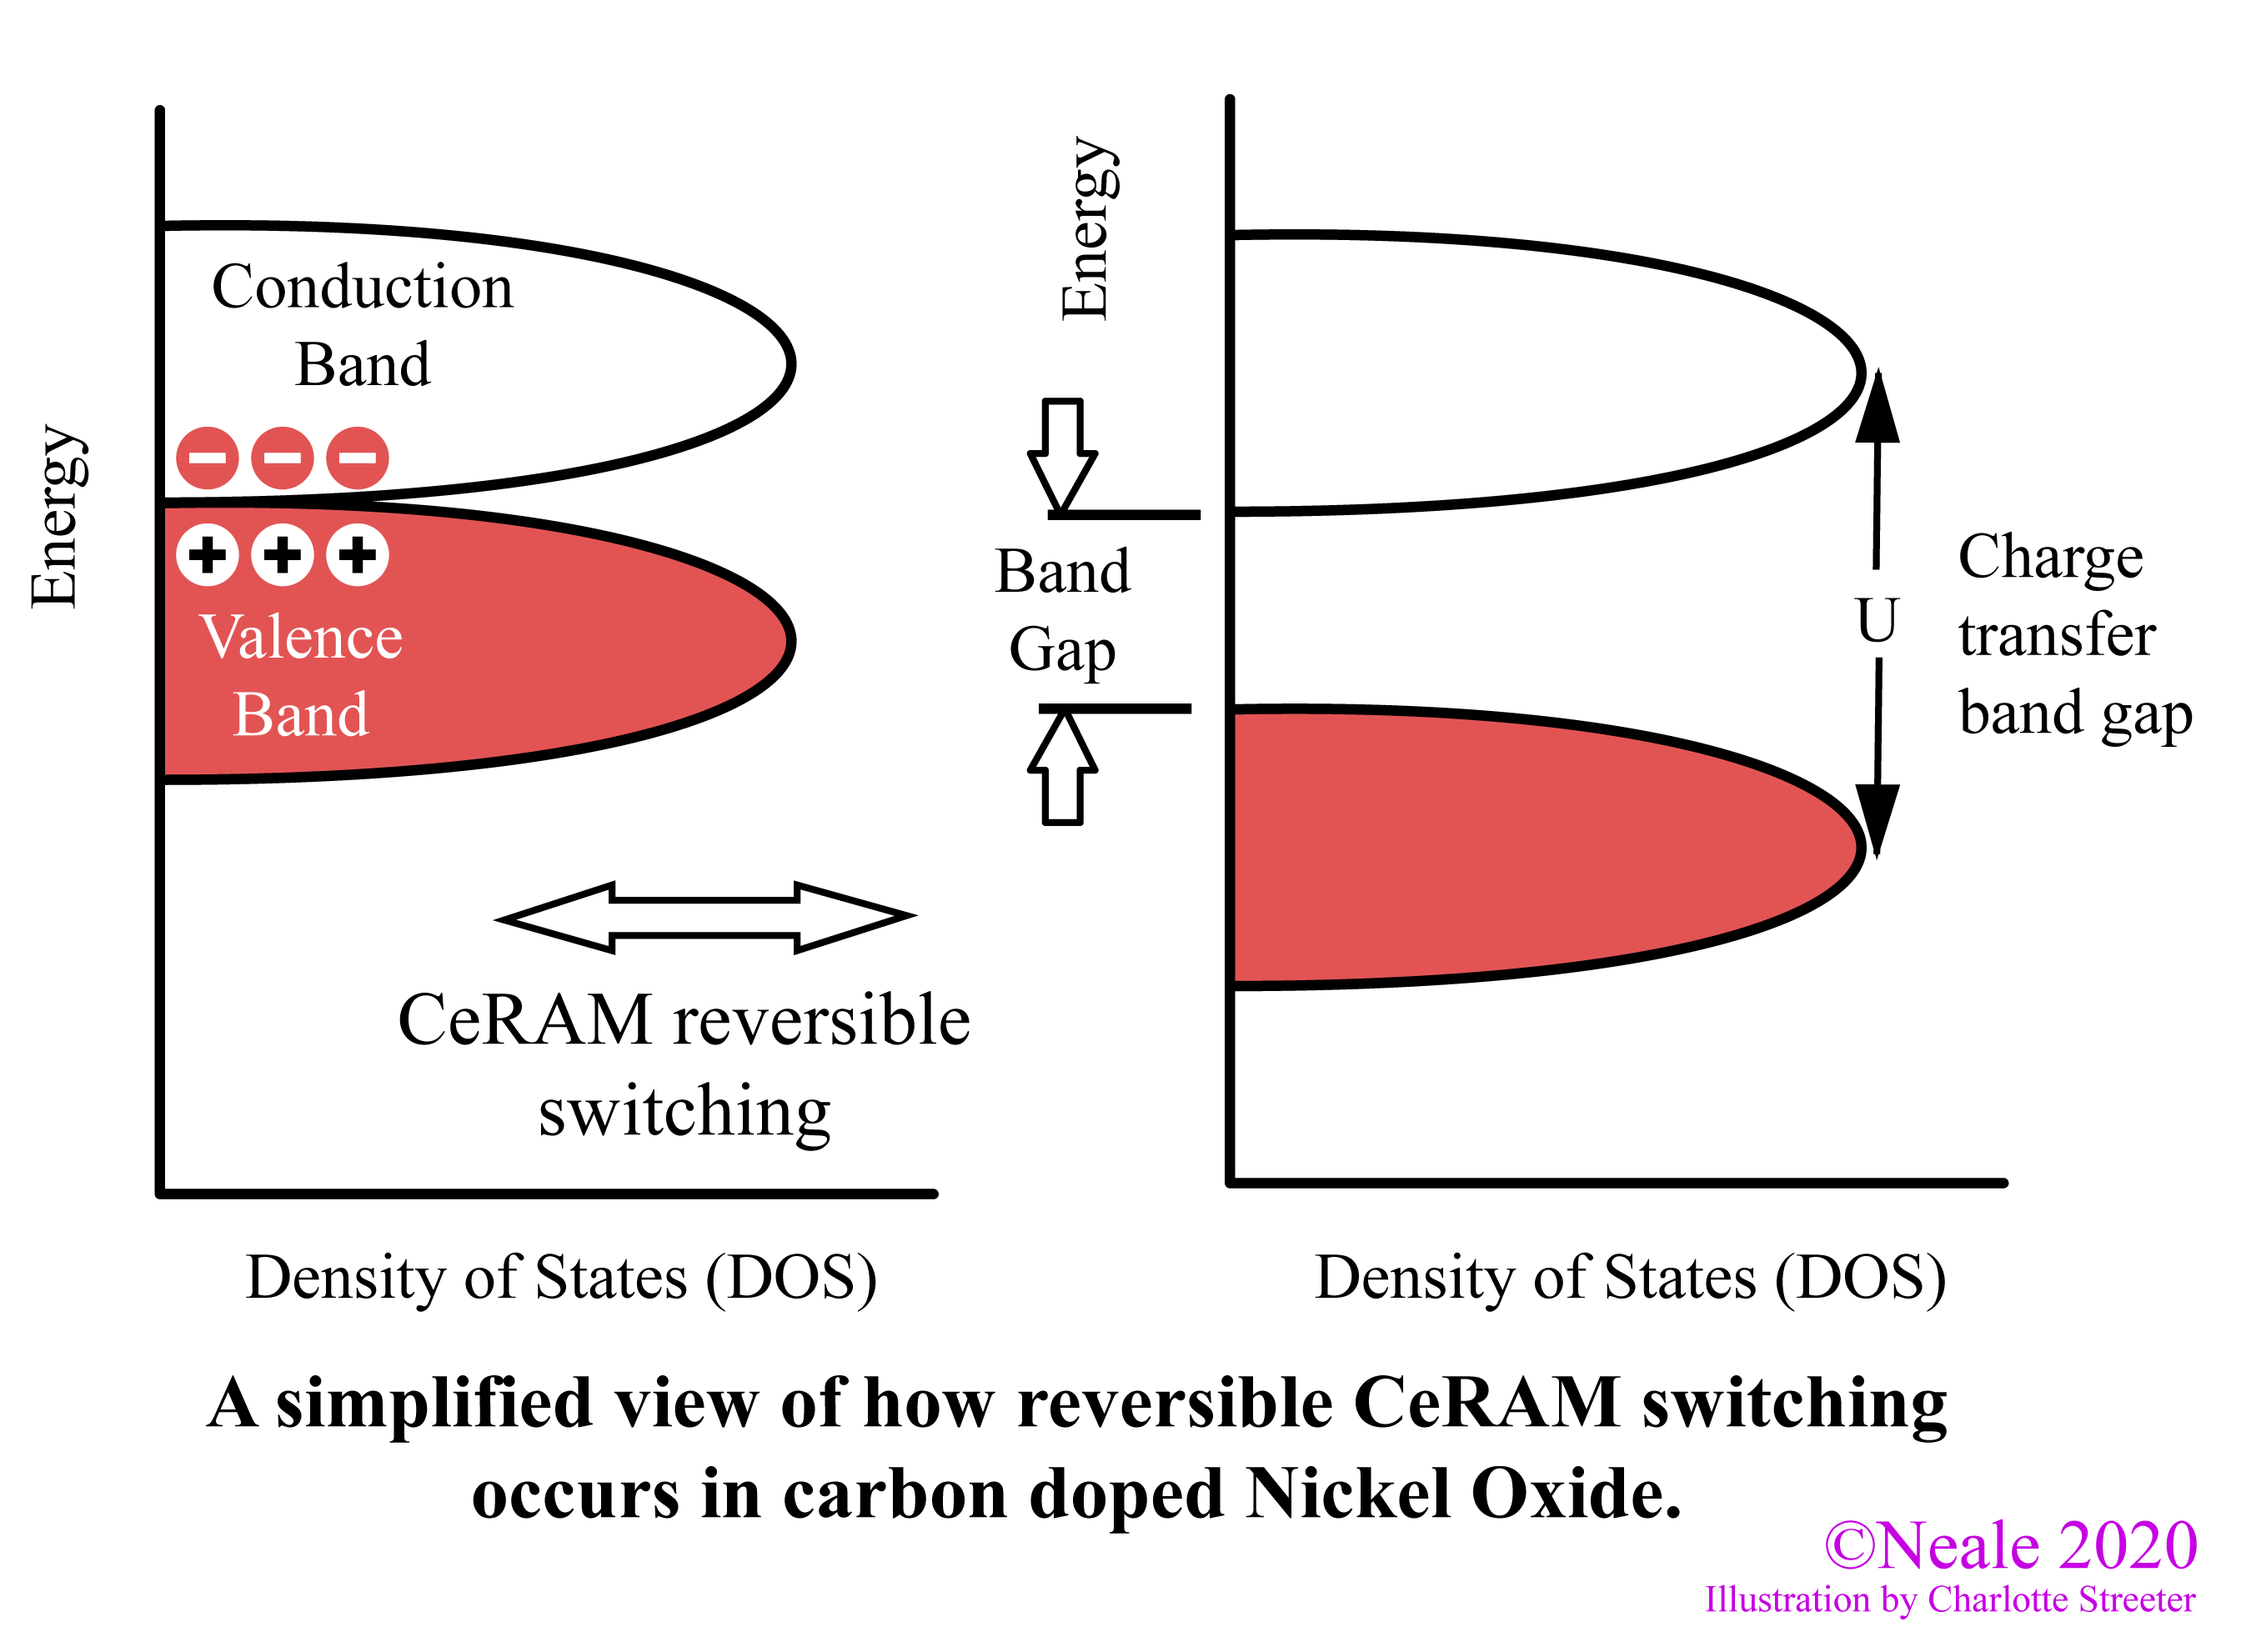 Band gap diagrams of set (left) and reset (right) states